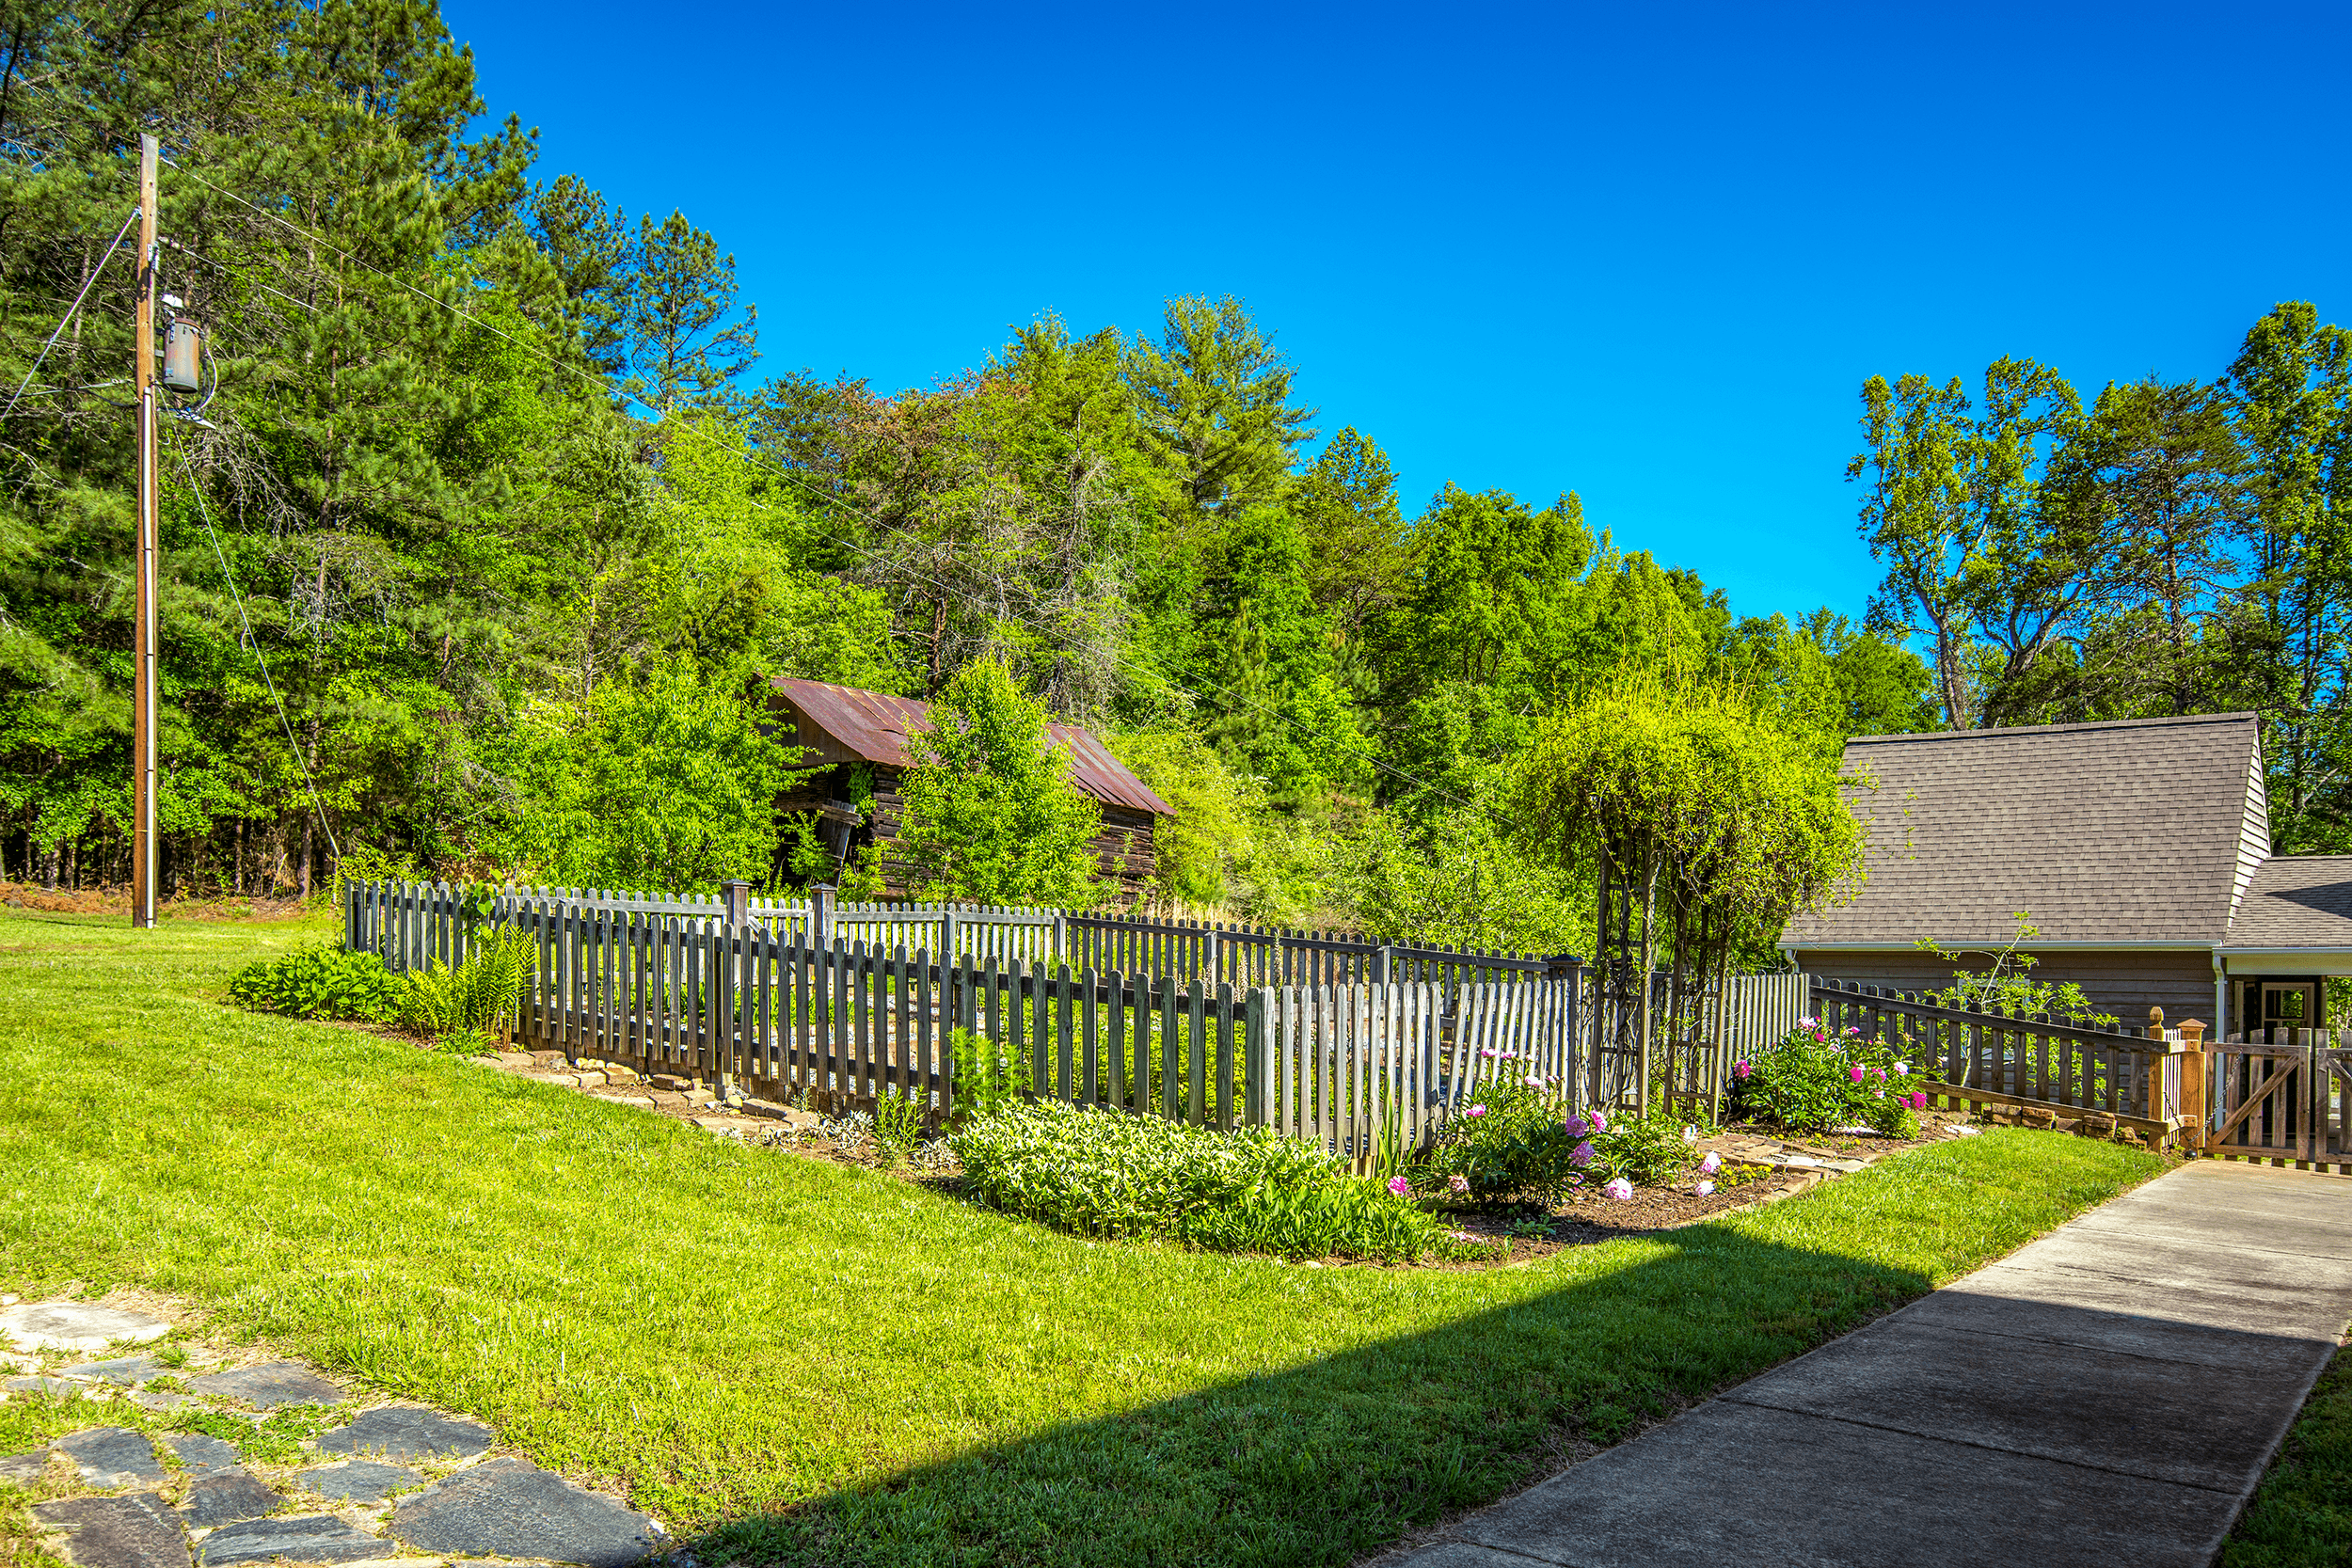 It is said that in 1780 on these grounds Charles McDowell's father and other Patriot soldiers made plans, which led to the victory over the British in the Battle of Kings Mountain during the American Revolutionary War (1775-1783). A small vegetable garden is located behind the house.